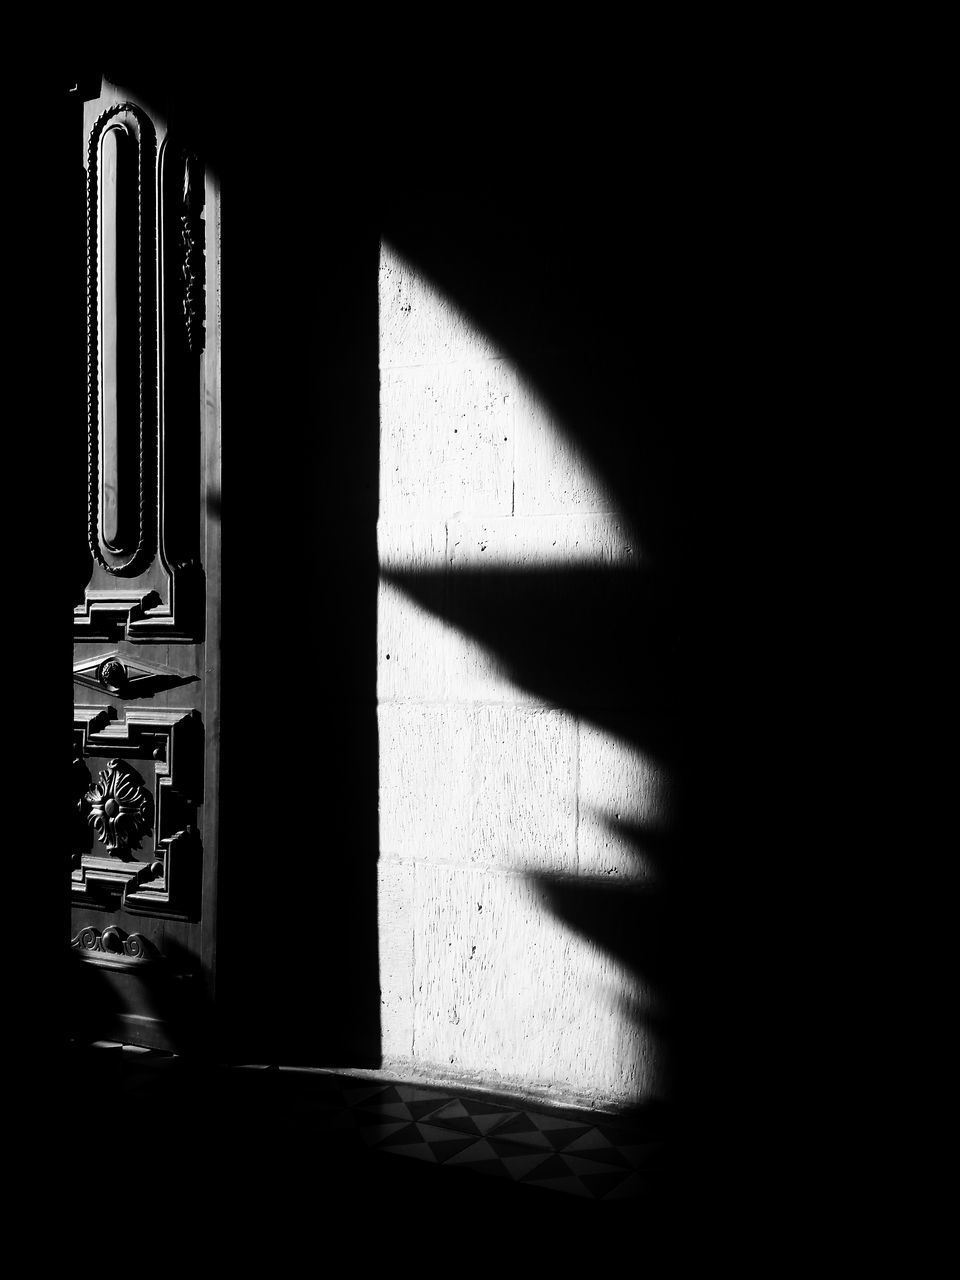 shadow, sunlight, nature, no people, indoors, built structure, day, architecture, wall - building feature, falling, dark, window, focus on shadow, building, metal, light - natural phenomenon, close-up, copy space